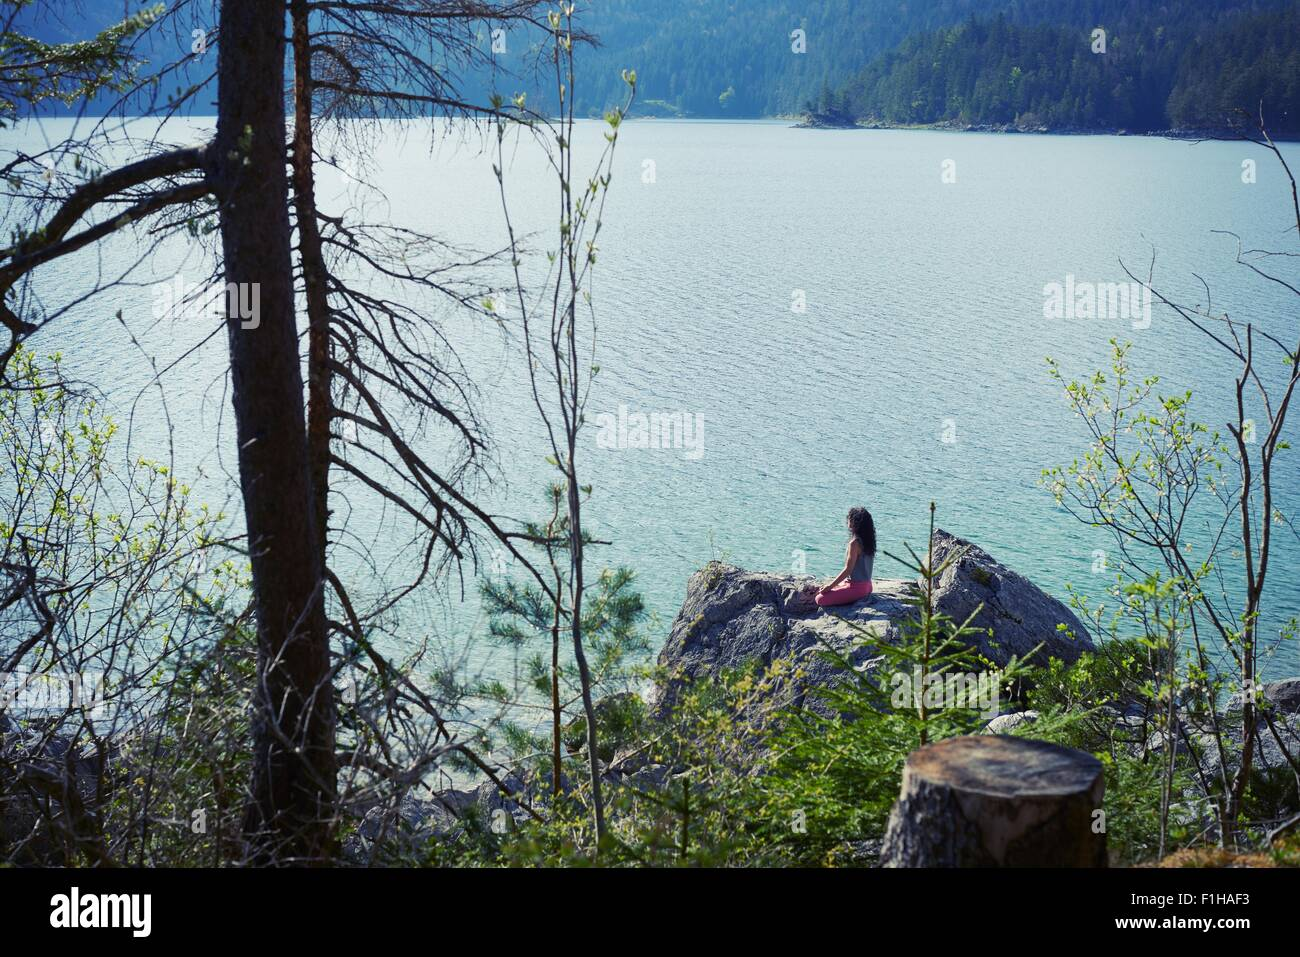 Mid adult woman, sitting on rock, in yoga position, rear view - Stock Image